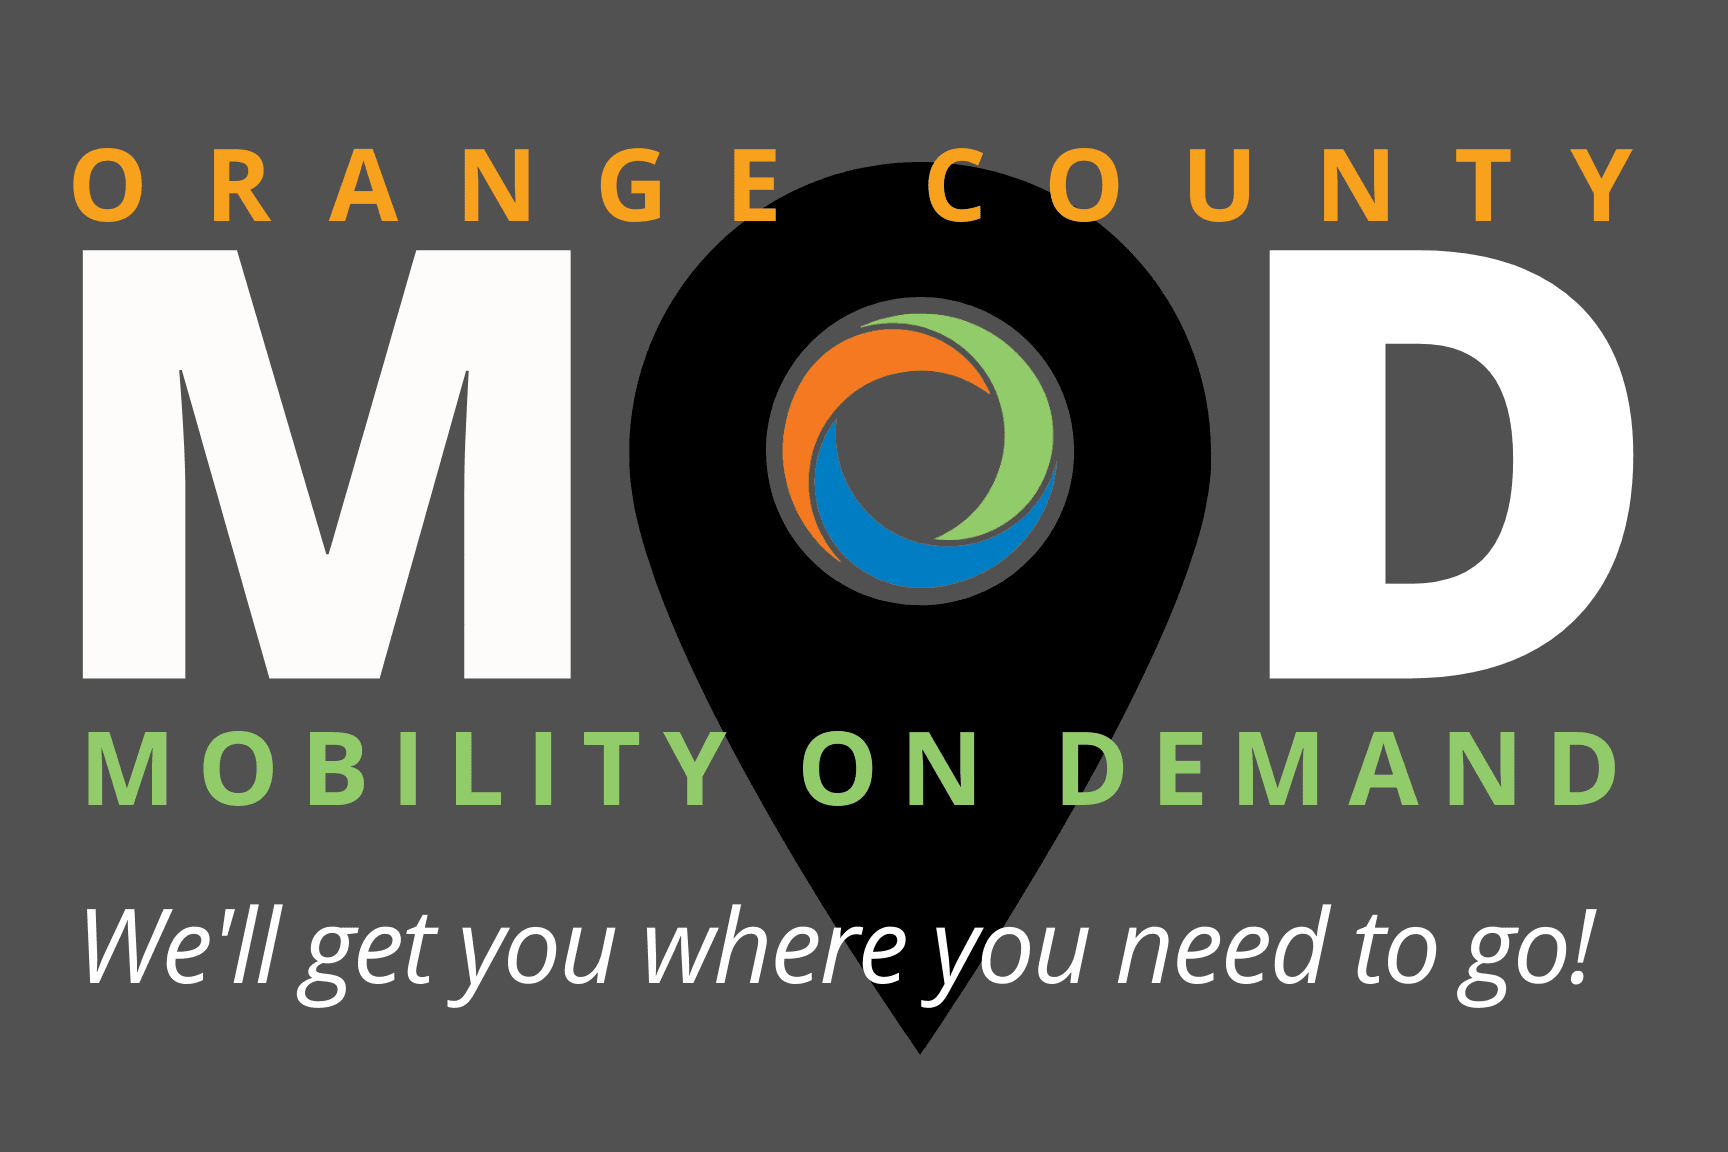 Orange County Mod Mobility On Demand, we'll get you where you need to go